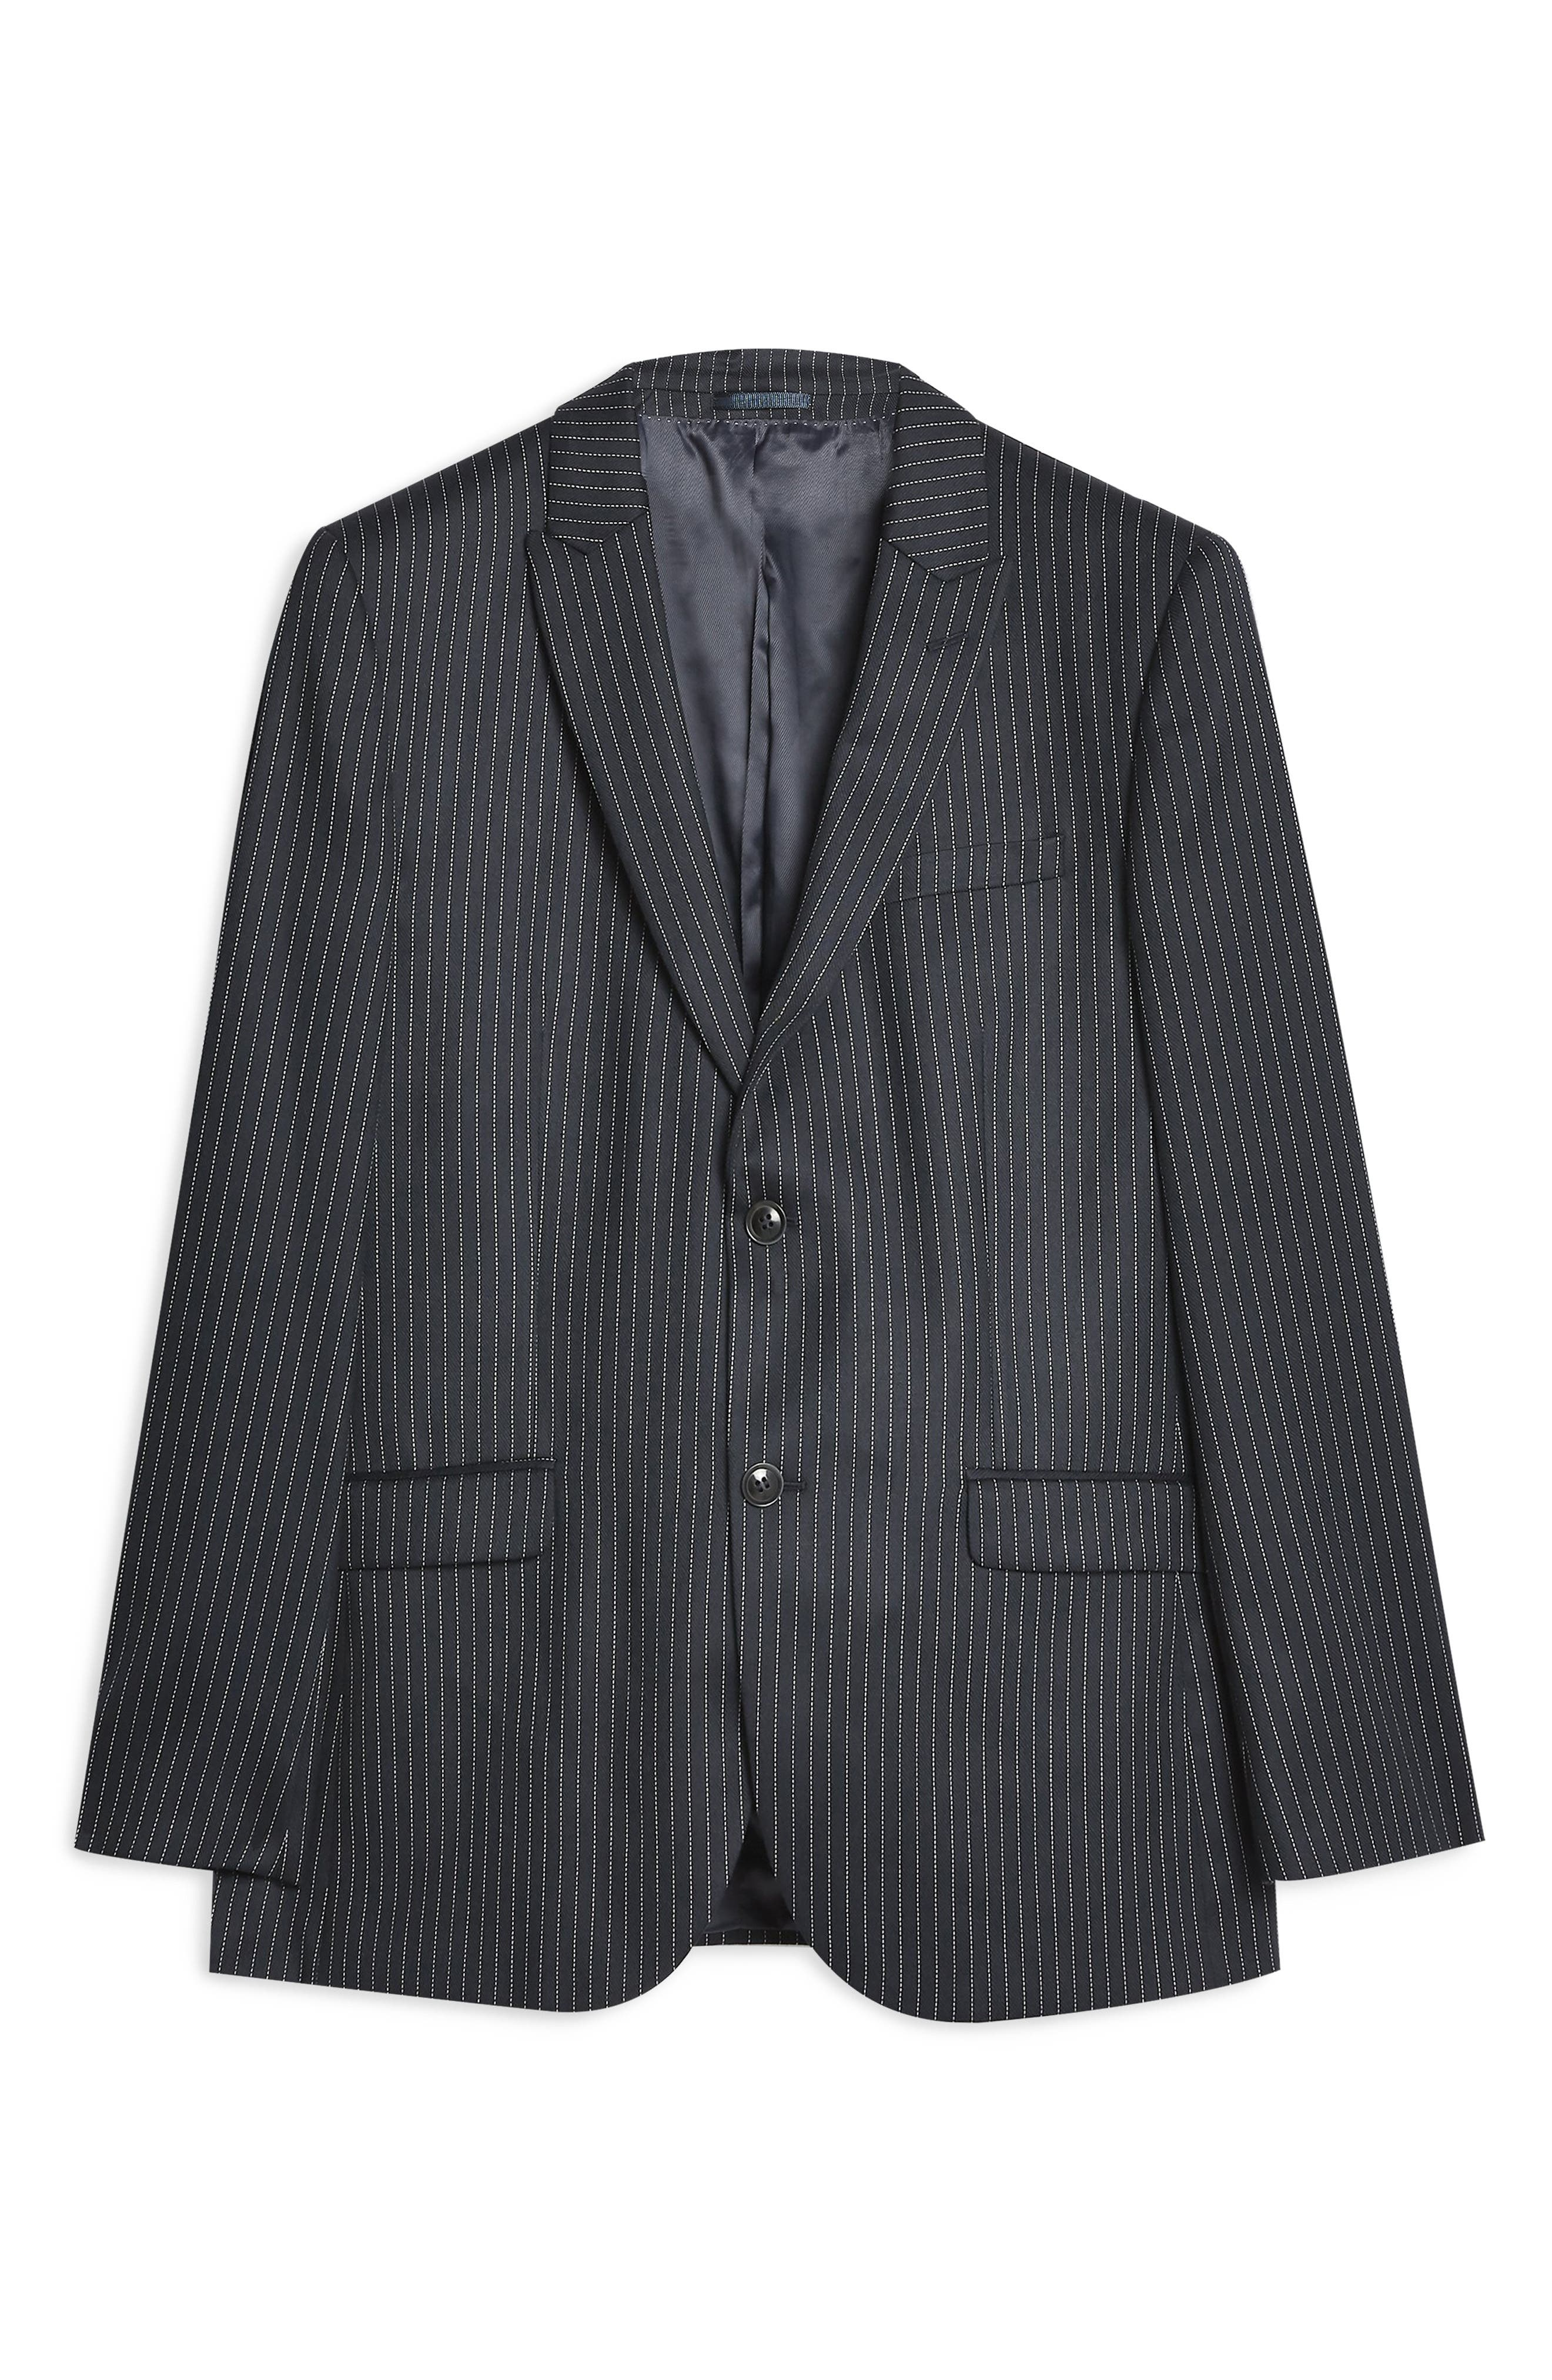 TOPMAN, Tailored Pinstripe Suit Jacket, Alternate thumbnail 5, color, NAVY BLUE